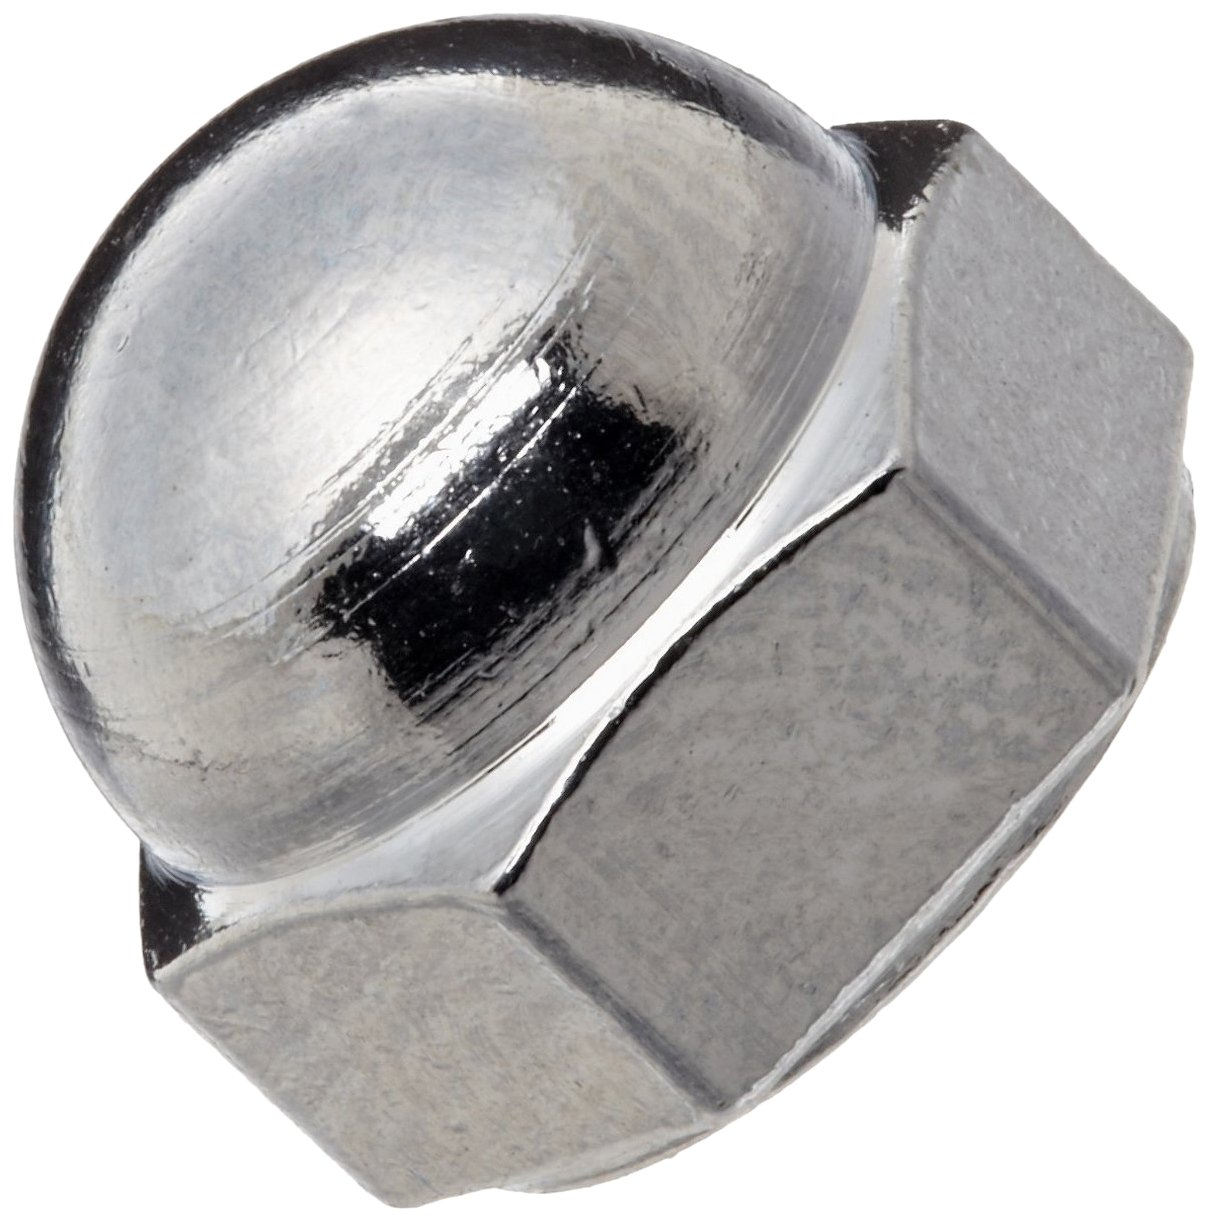 Chrome-Plated Brass Acorn Nut, USA Made, 7/16''-20 Thread Size, 3/4'' Width Across Flats, 9/16'' Height, 3/8'' Minimum Thread Depth (Pack of 5)